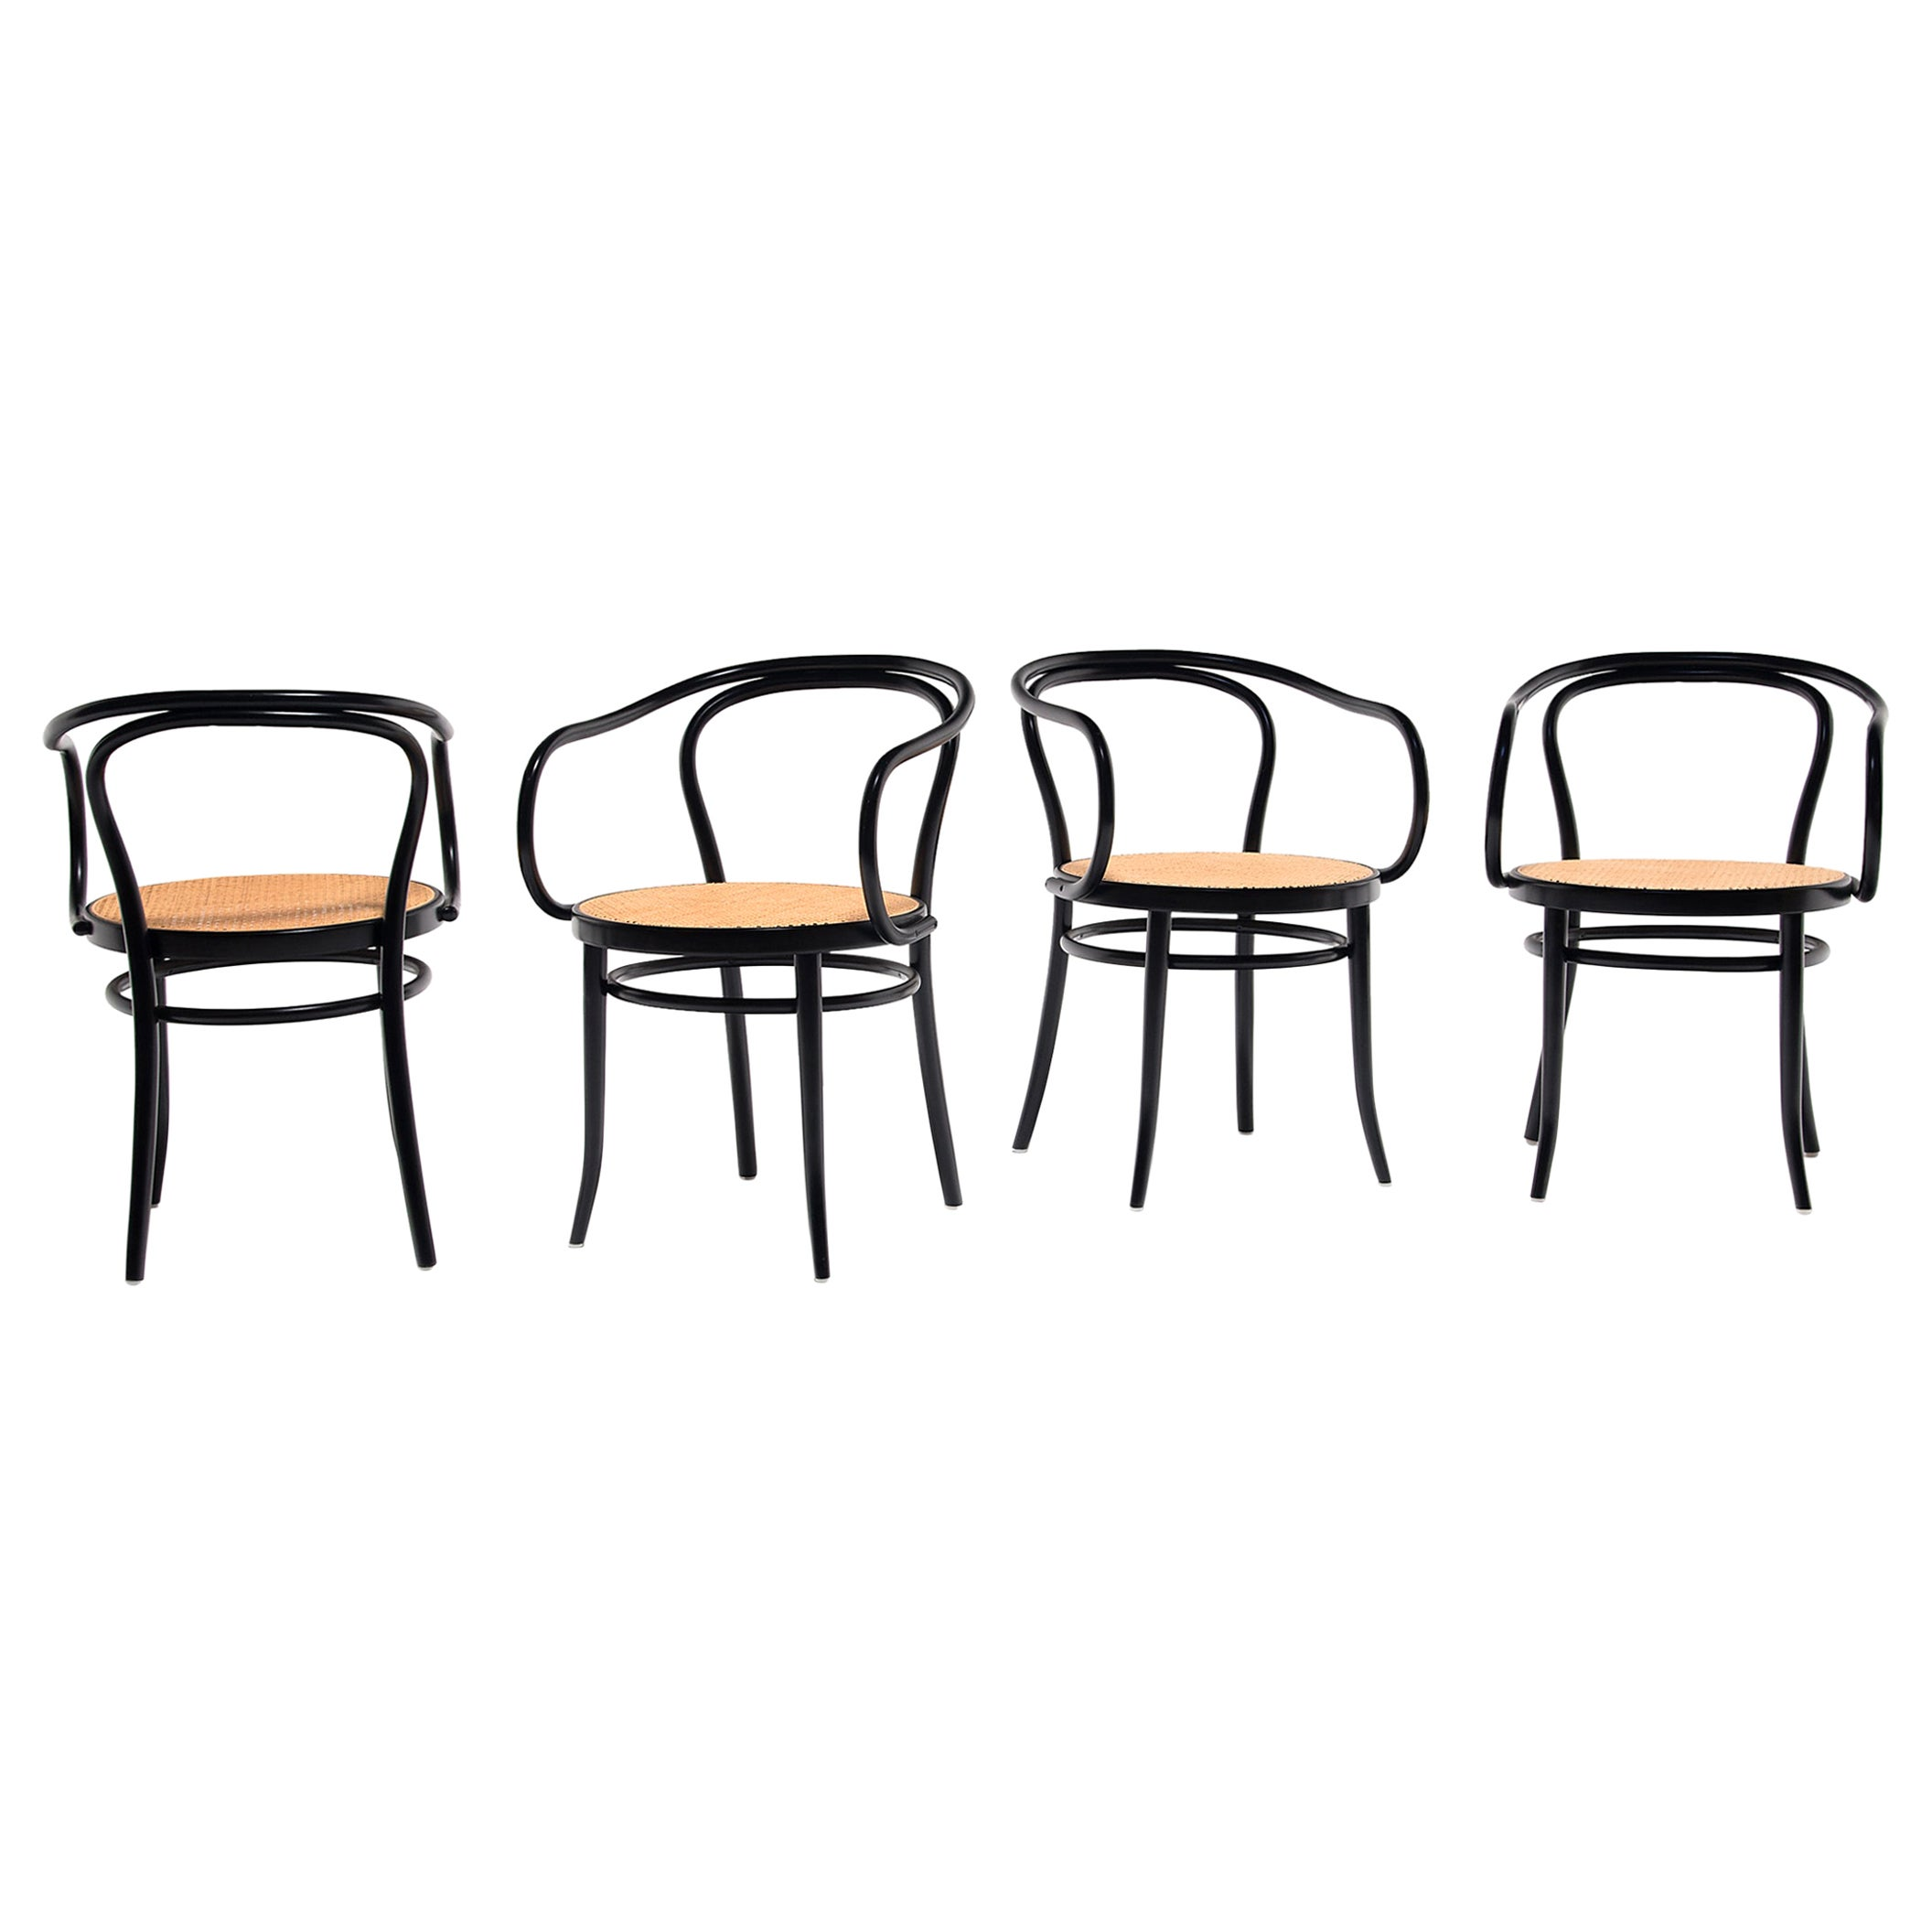 Set of Four Vintage Thonet Bentwood Cane Chairs